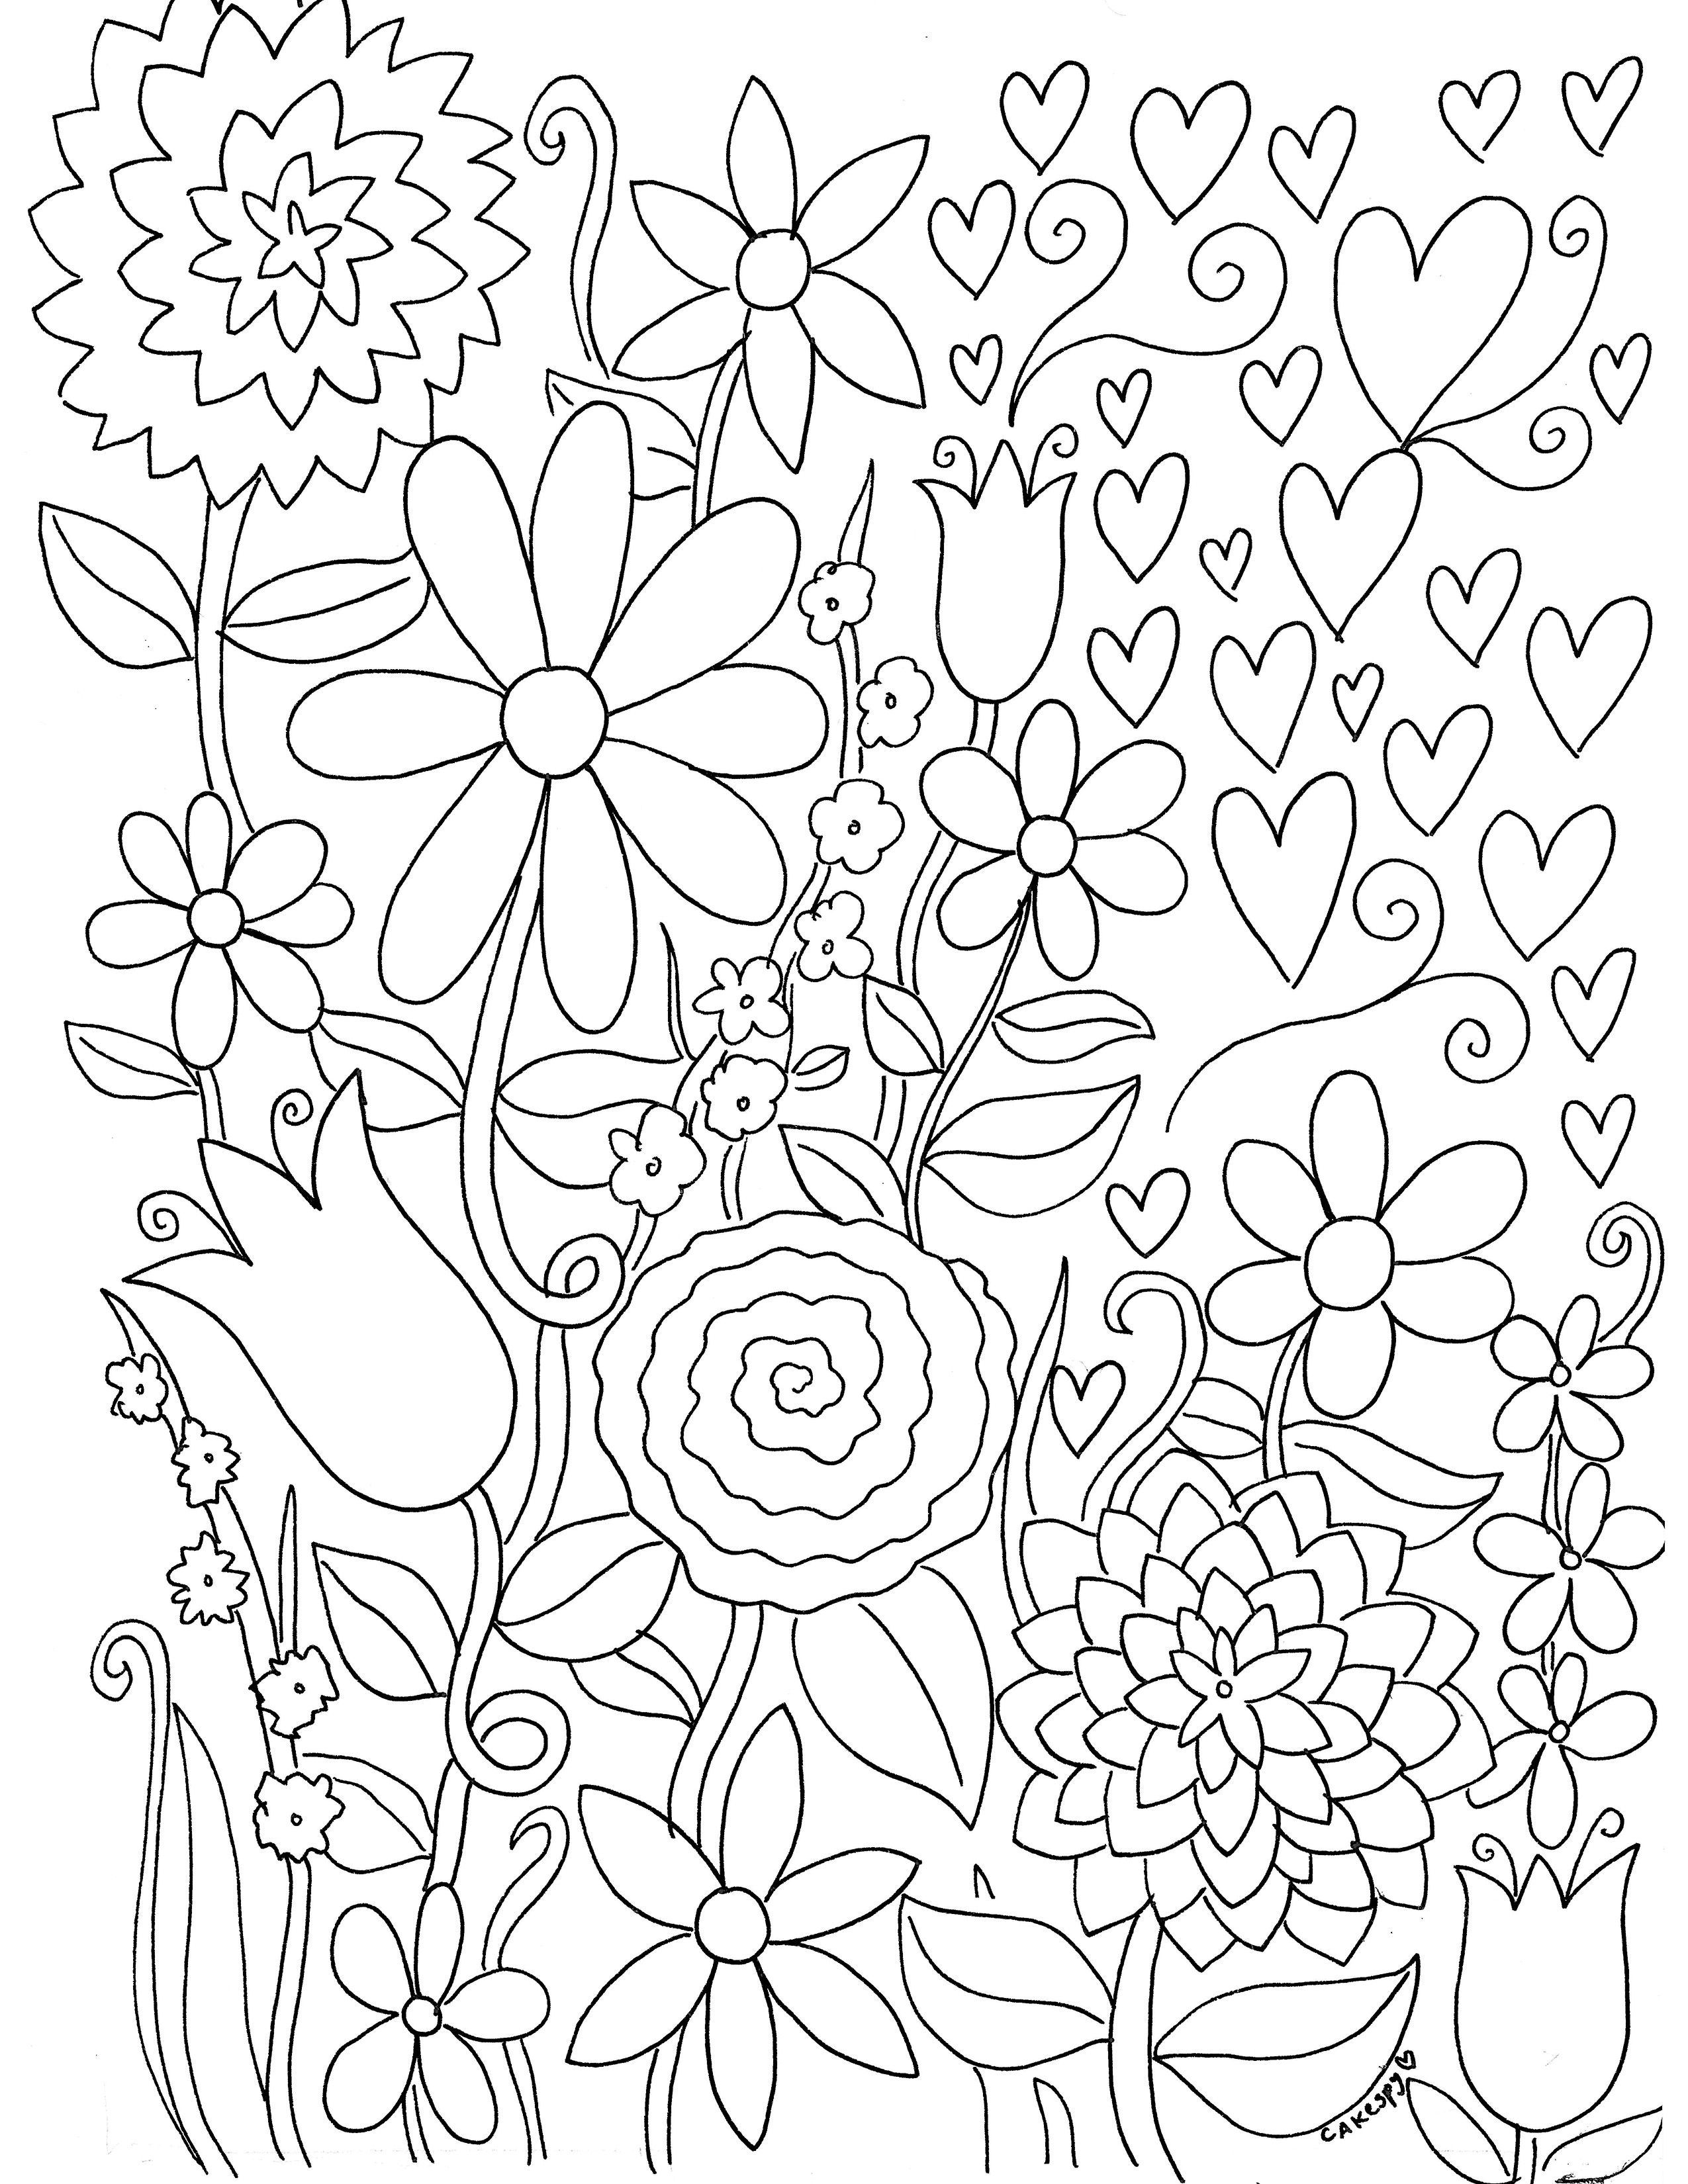 FREE Paint by Numbers for Adults Downloadable | *PRINTABLE ...